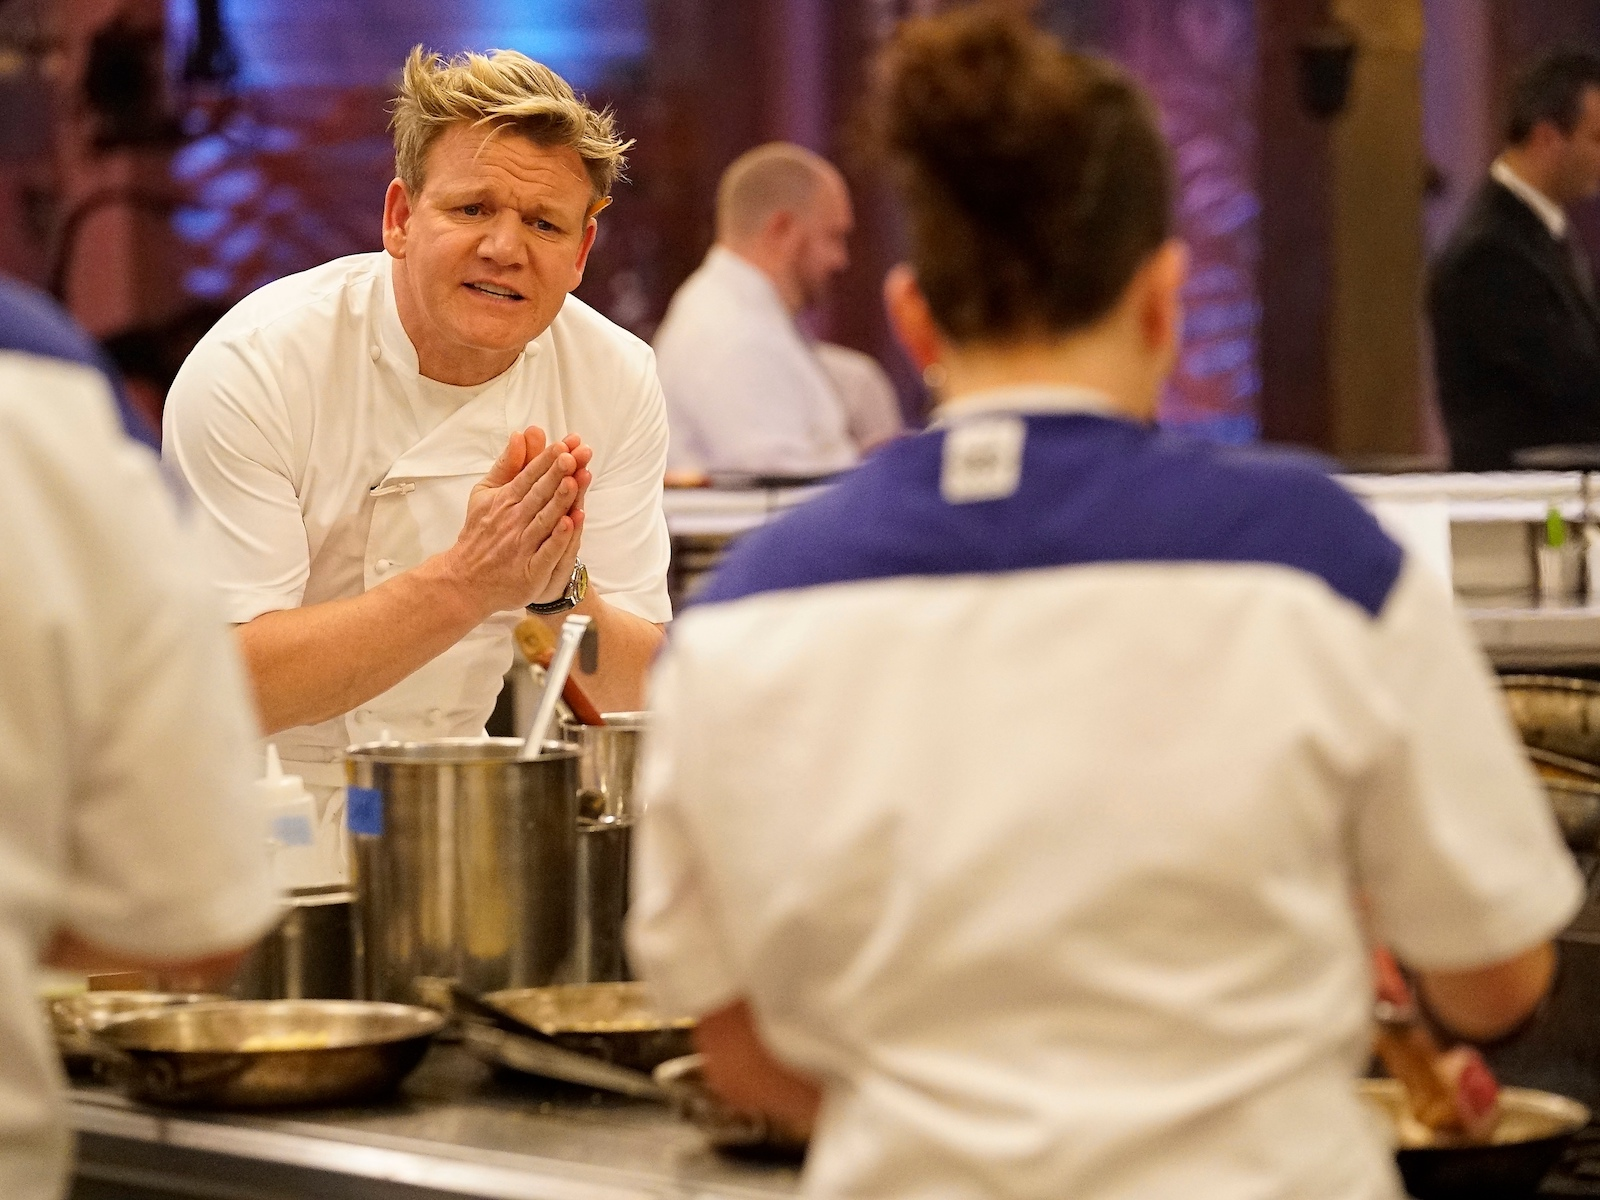 On Hell S Kitchen All Stars Gordon Ramsay Chooses Who